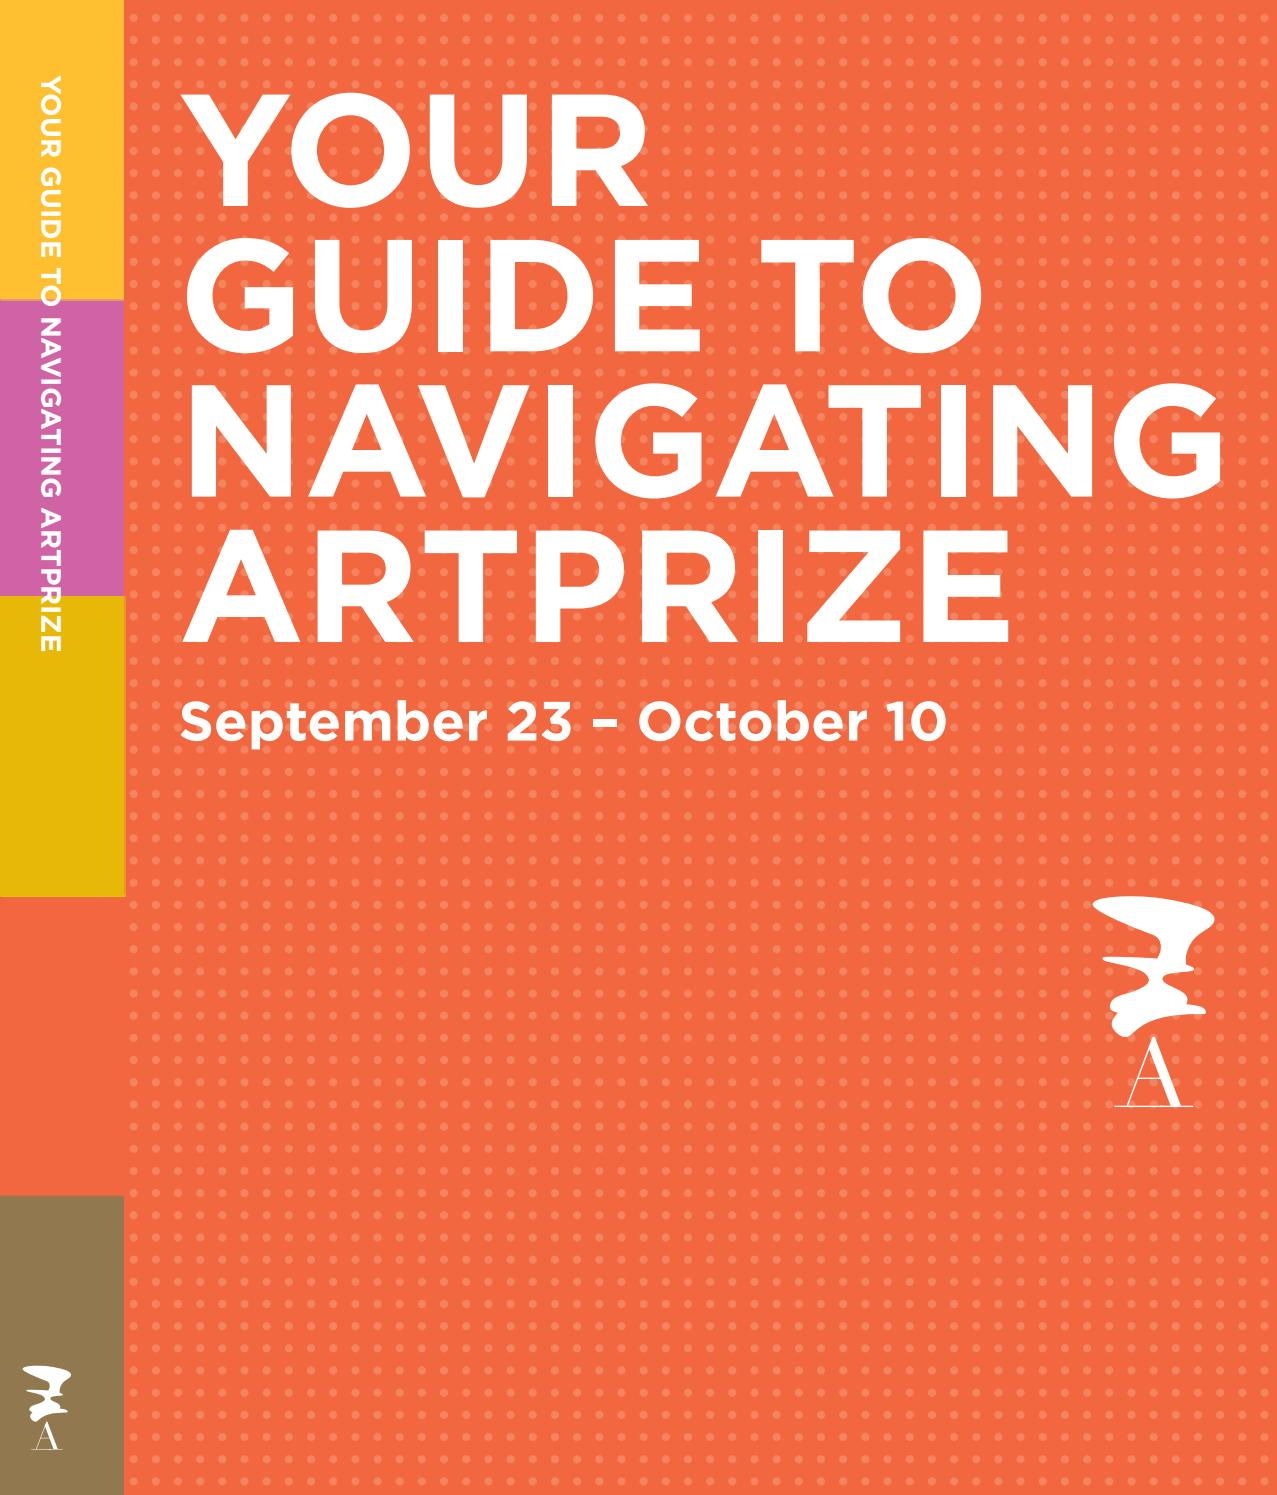 Artprize Events Guide By Scott Krieger